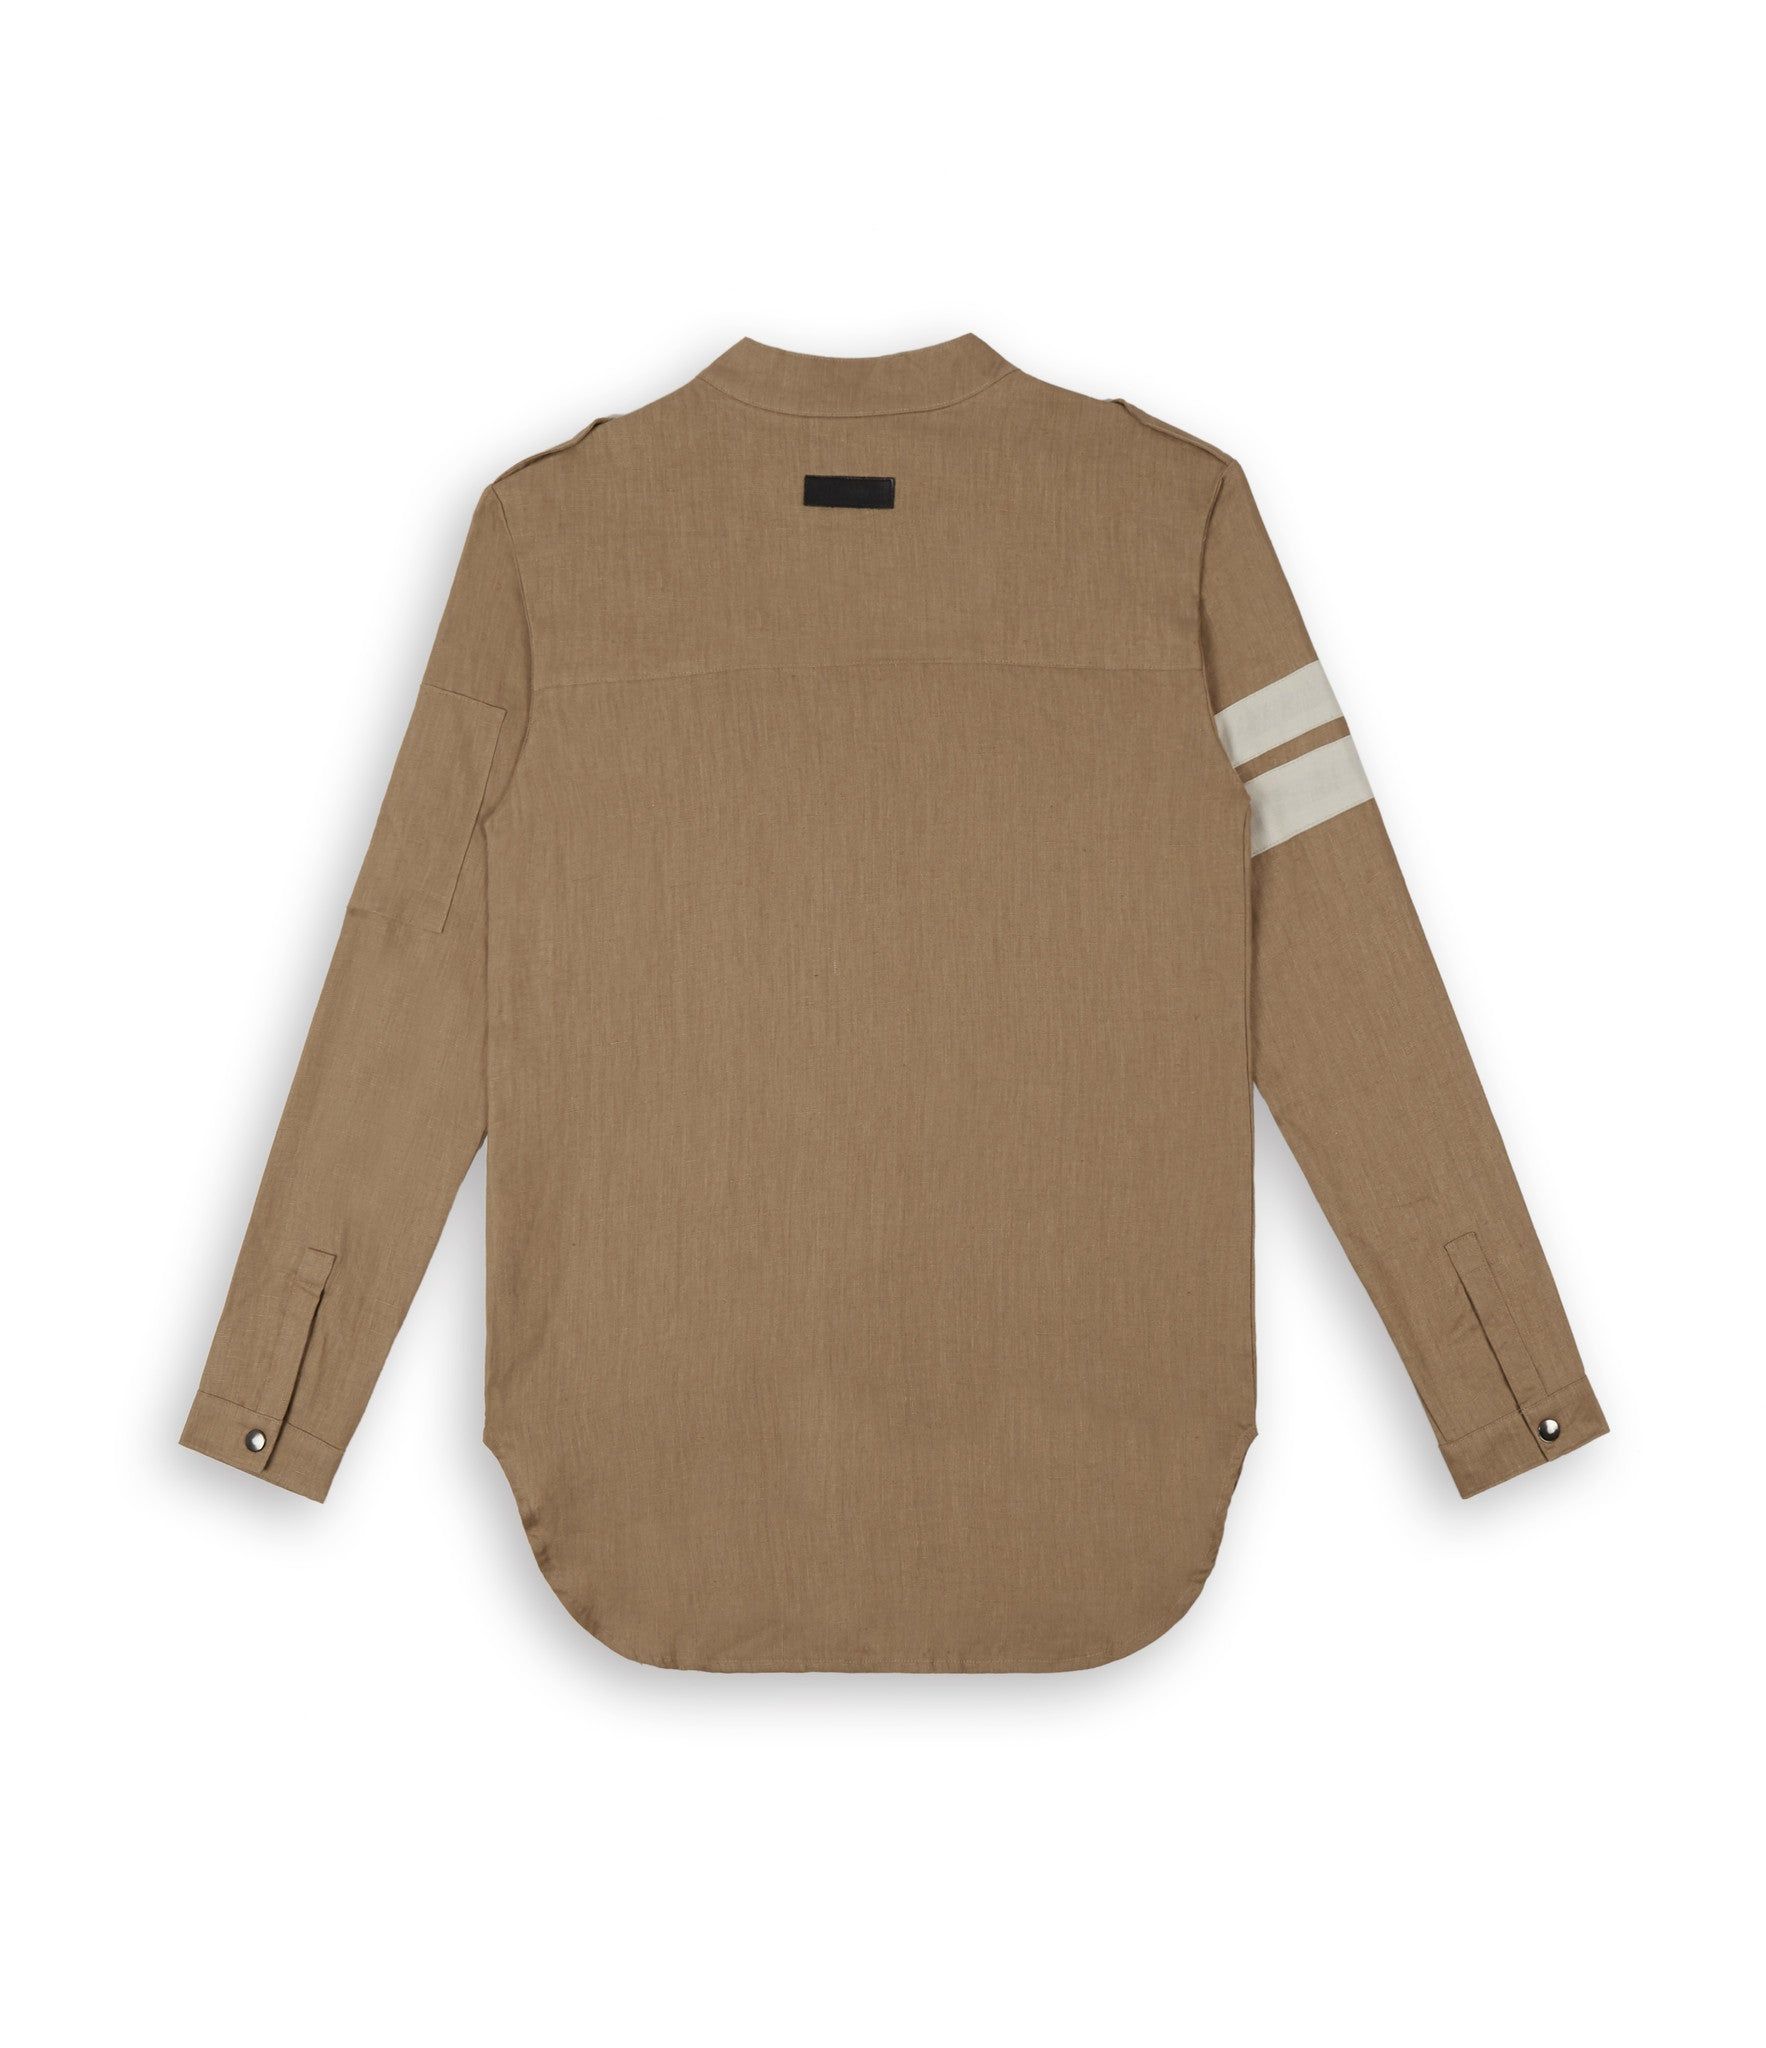 SH273 Exile Military Shirt - Tan - underated london - underatedco - 4